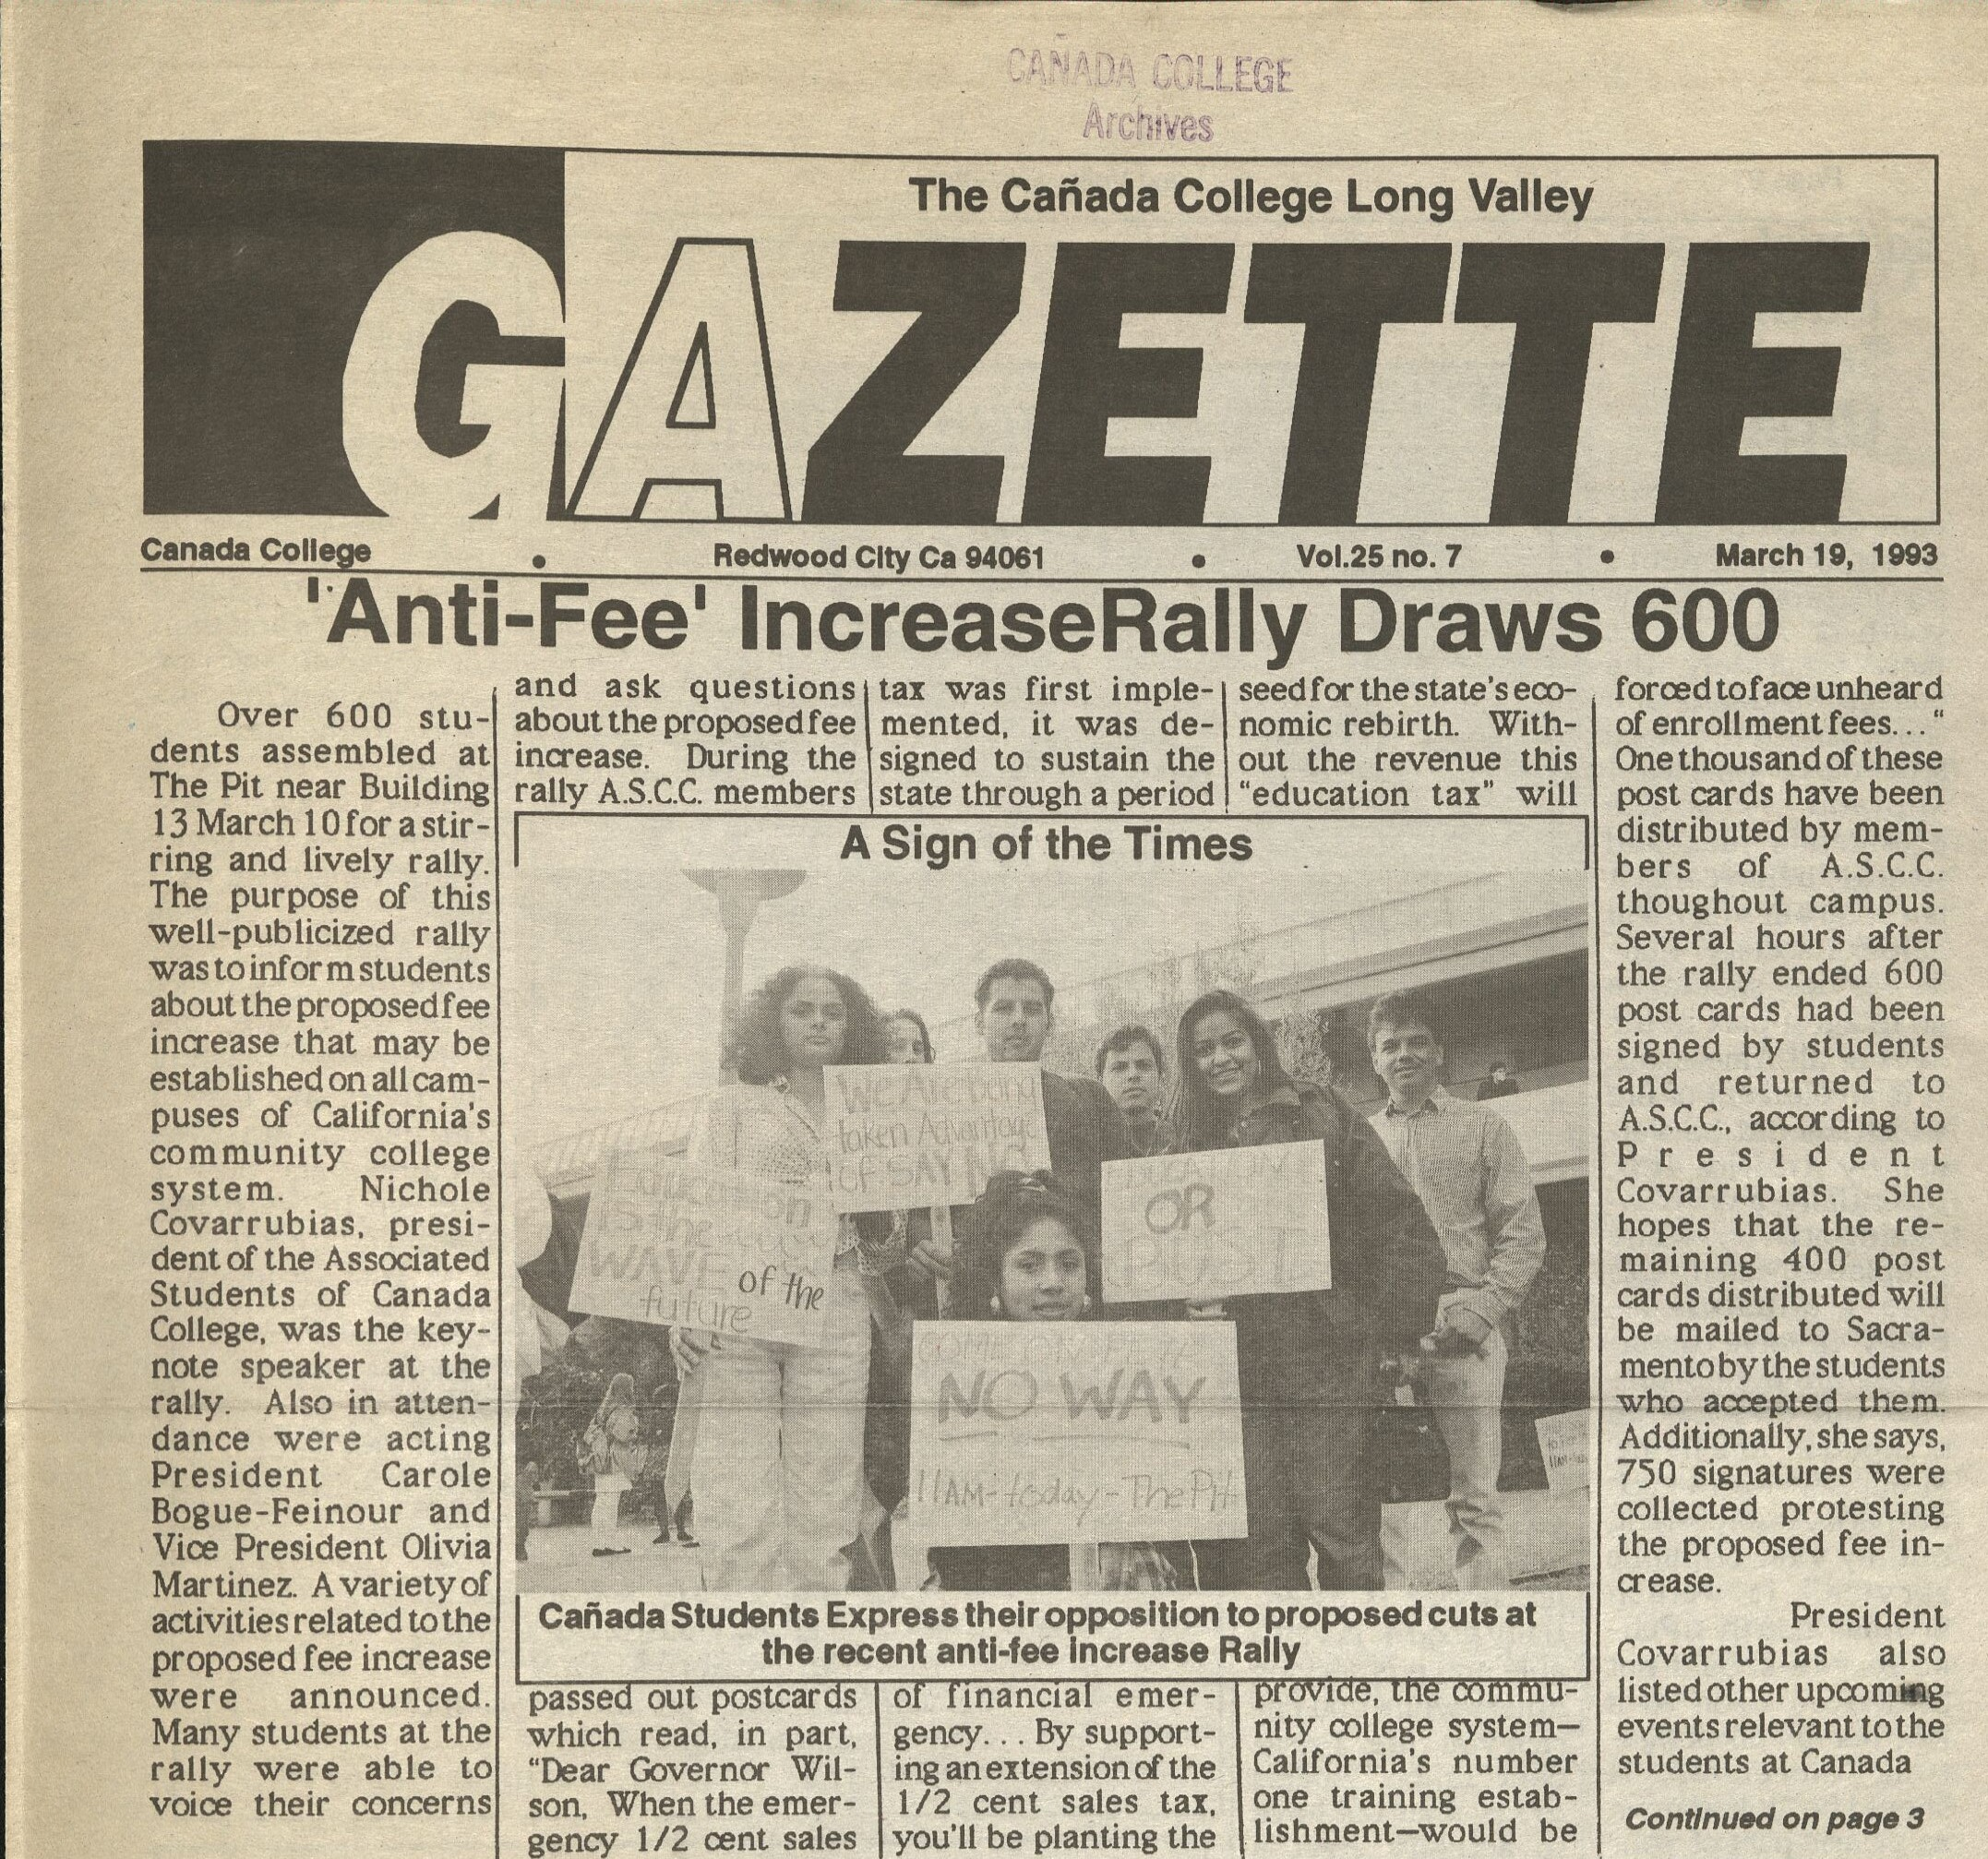 Canada College student newspaper article showing Anti-free increase rally